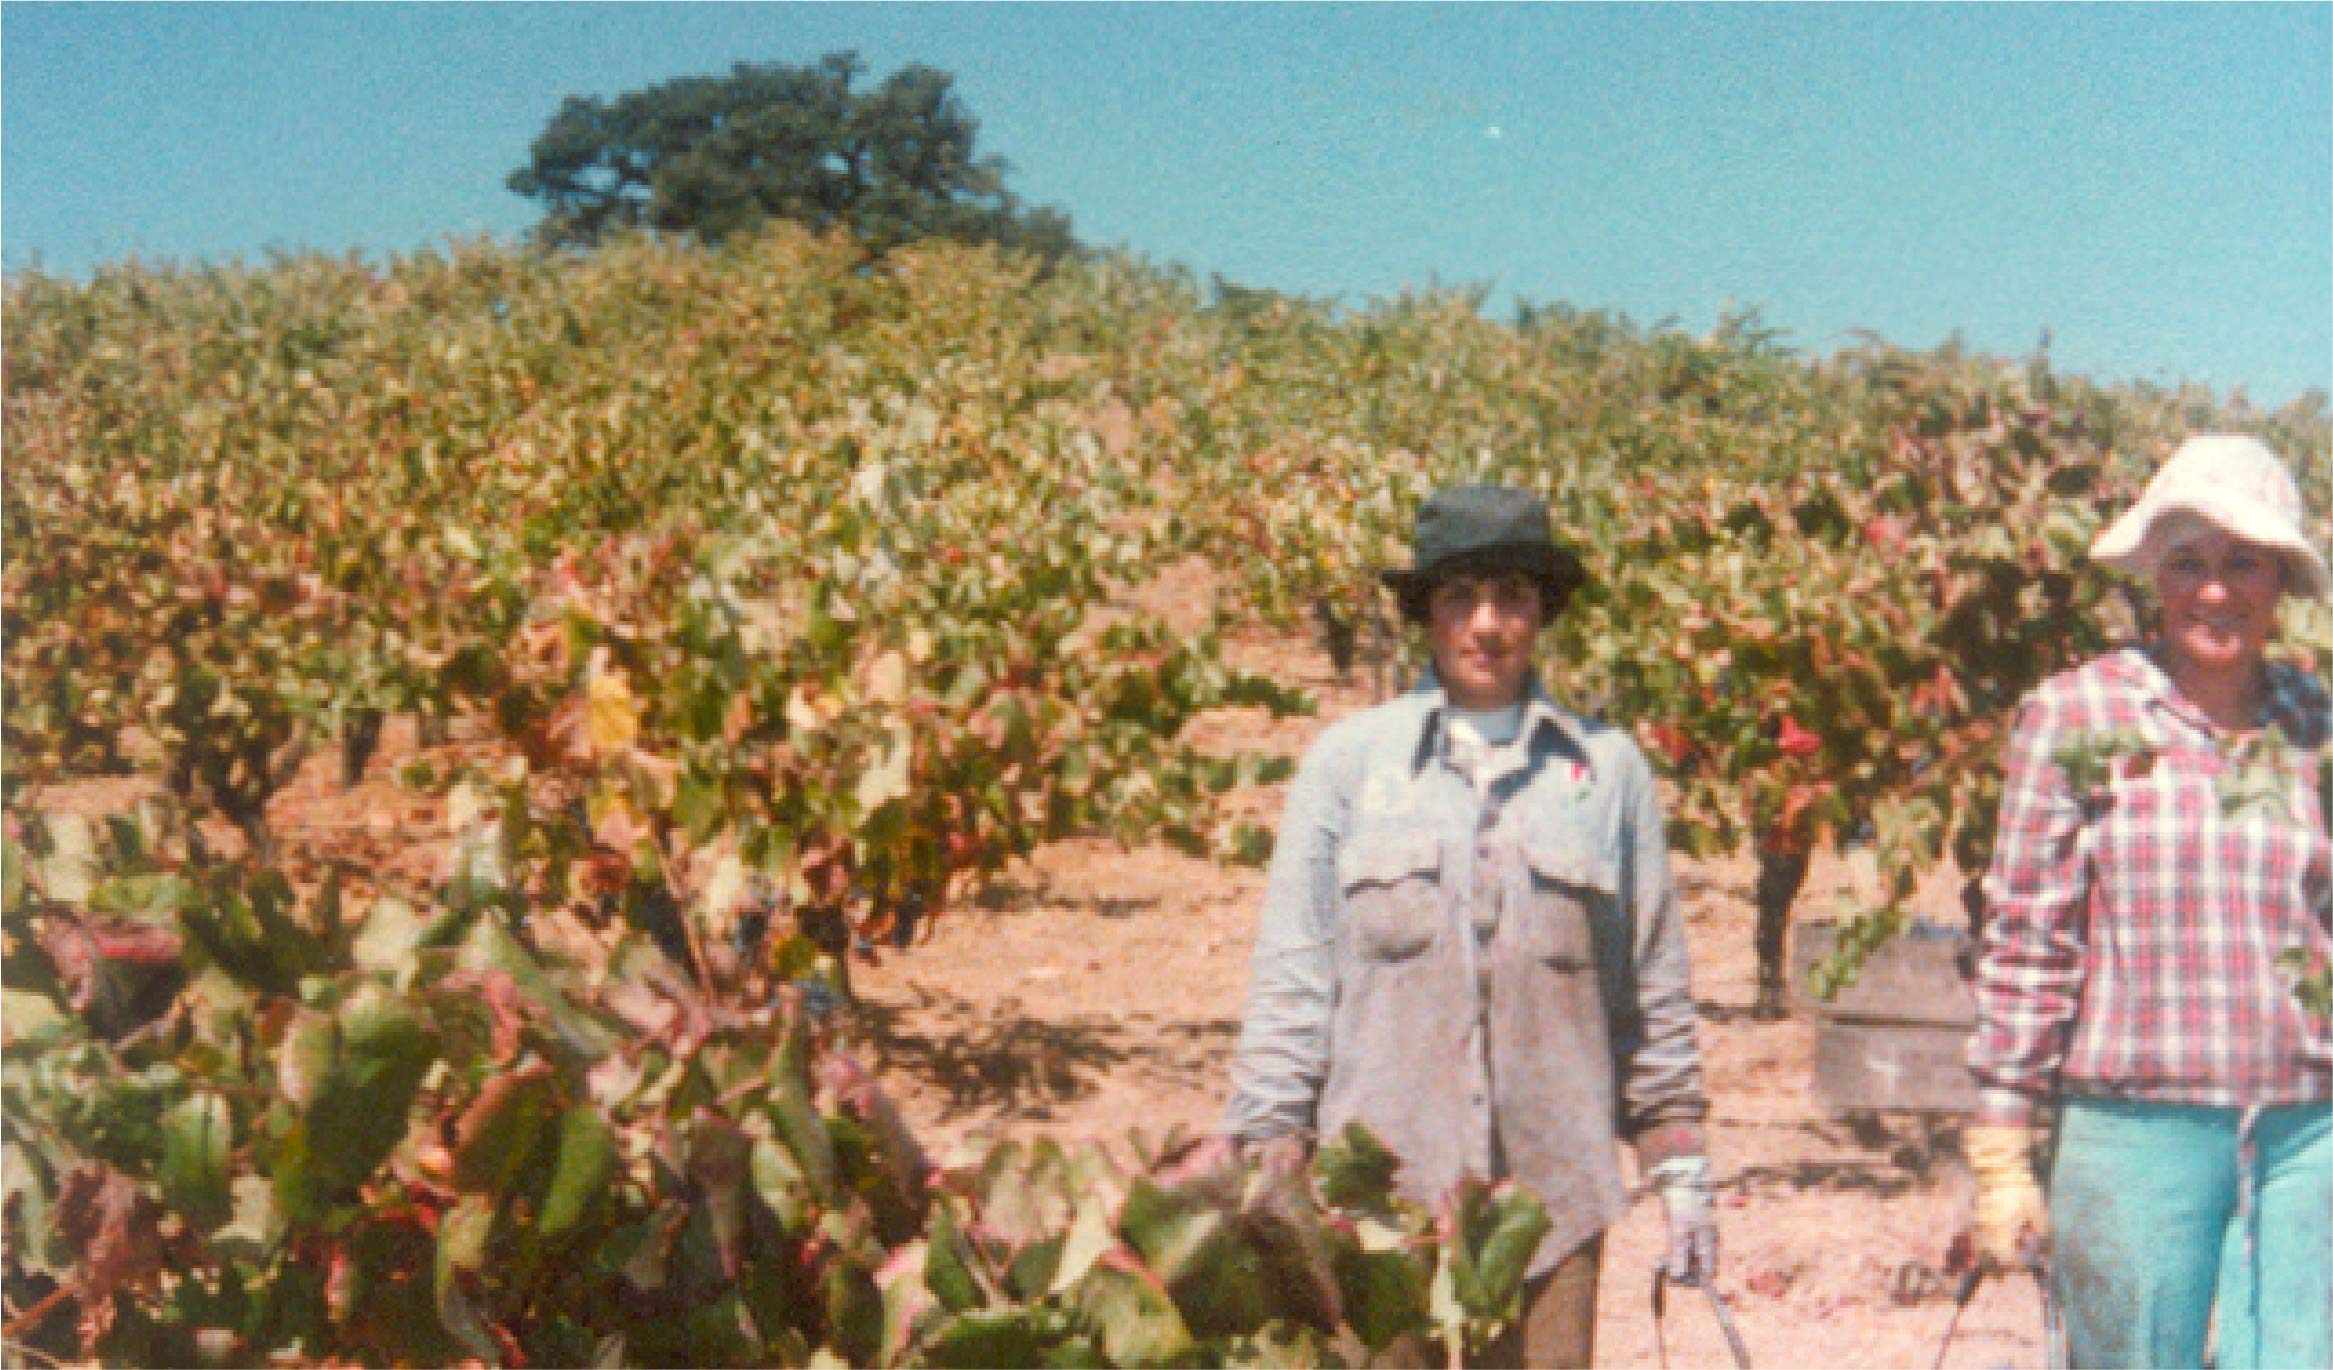 Two vineyard workers amongst the vines.